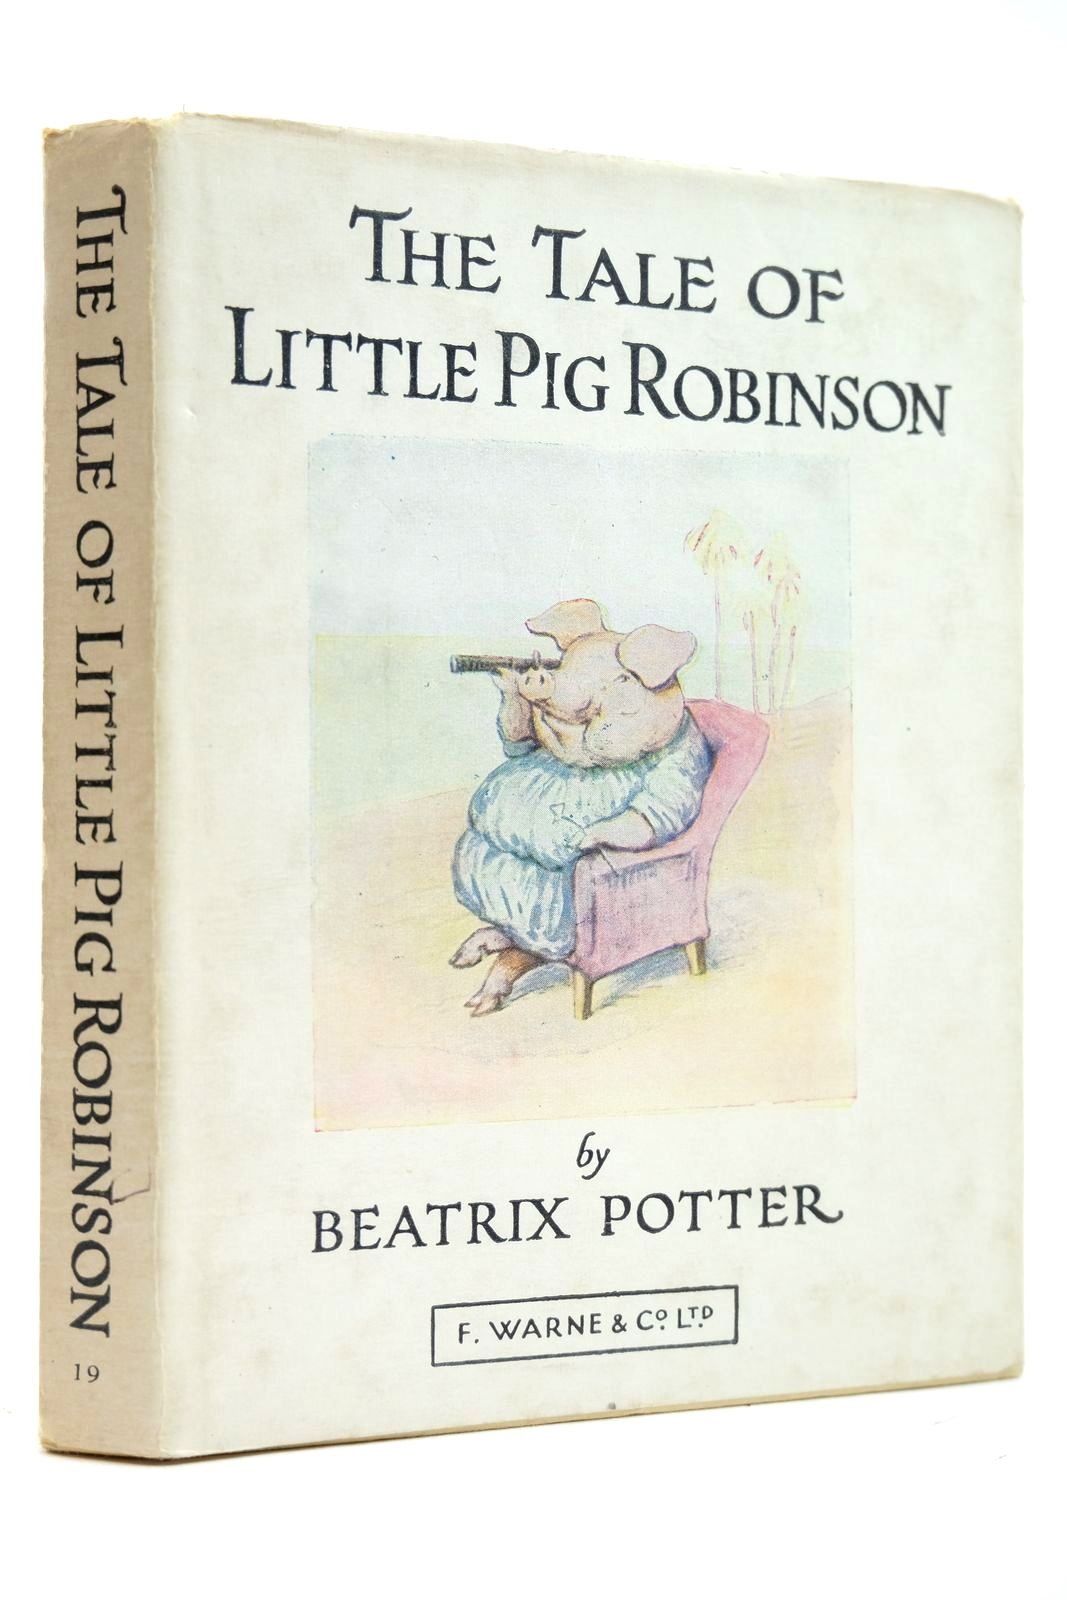 Photo of THE TALE OF LITTLE PIG ROBINSON written by Potter, Beatrix illustrated by Potter, Beatrix published by Frederick Warne & Co Ltd. (STOCK CODE: 2131897)  for sale by Stella & Rose's Books